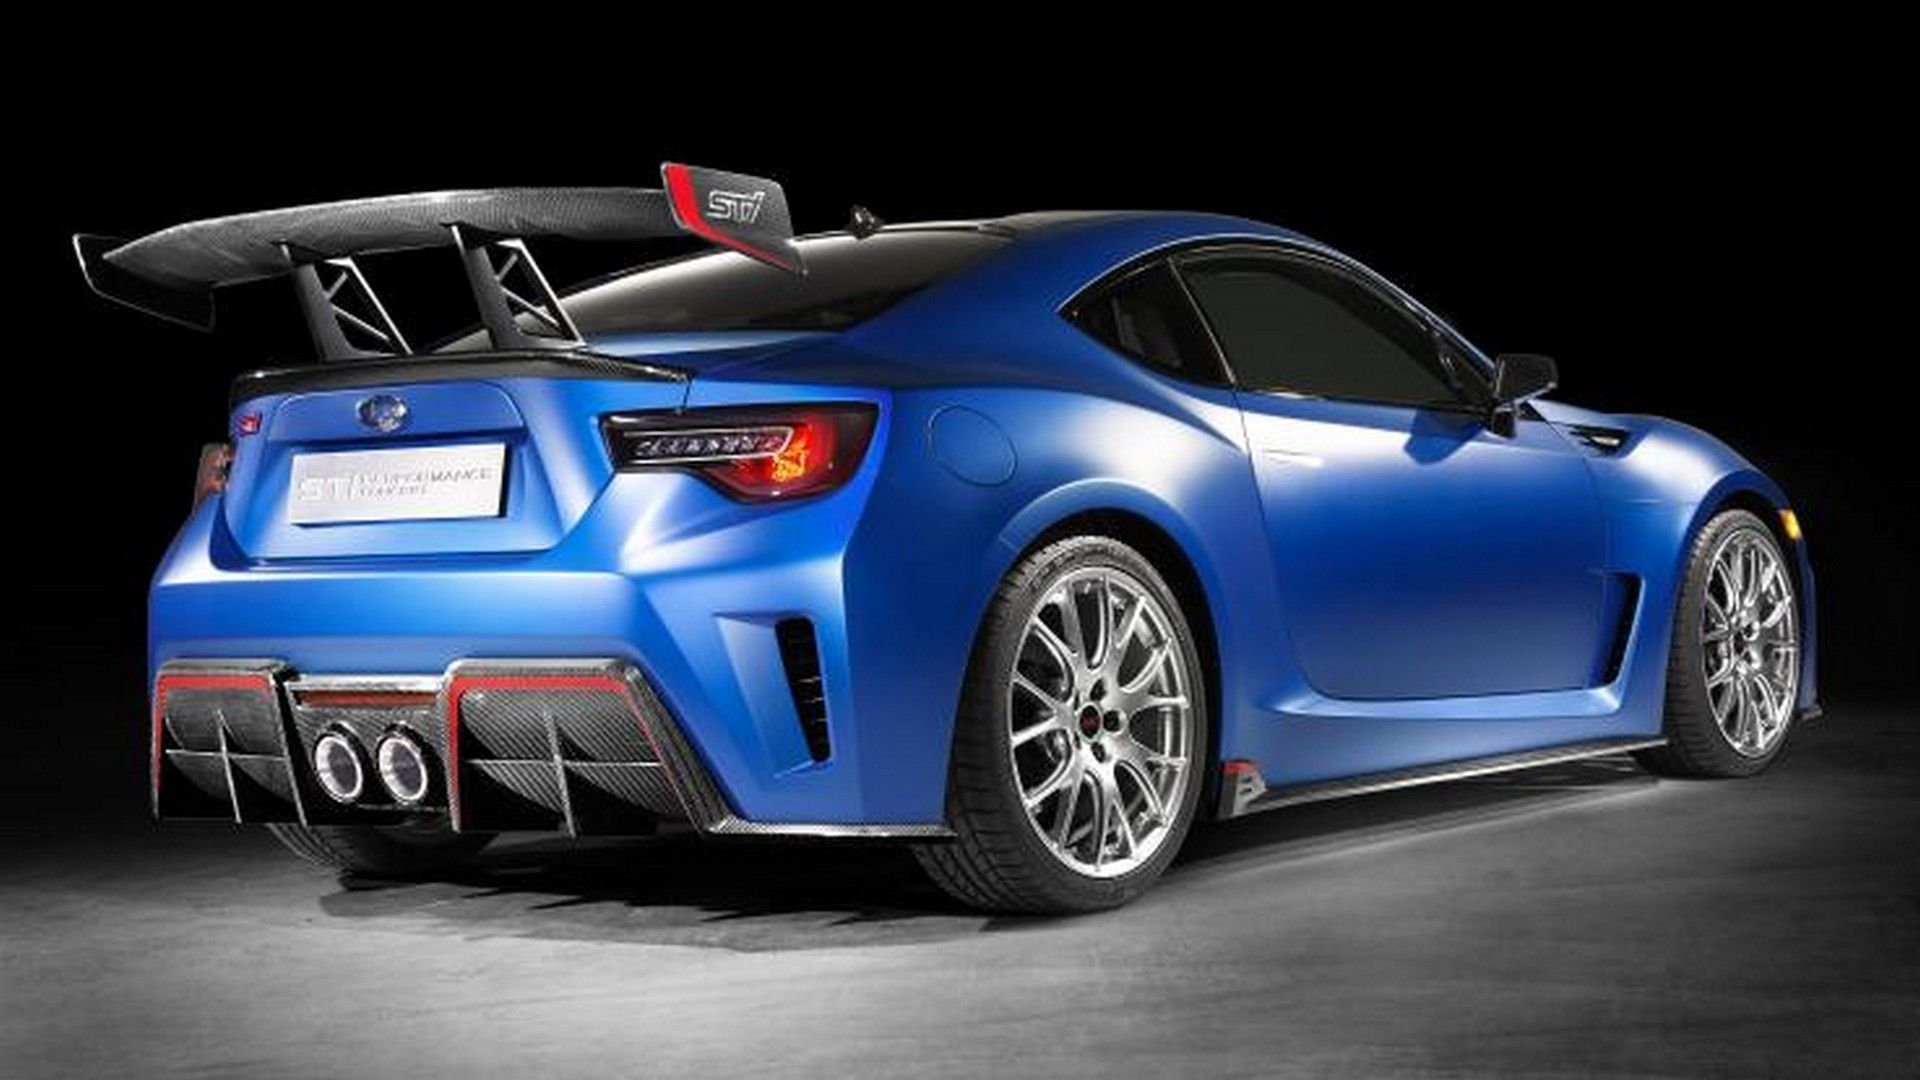 Brz Subaru 2020 Specs And Review Subaru Brz Subaru Cars Subaru Brz Sti